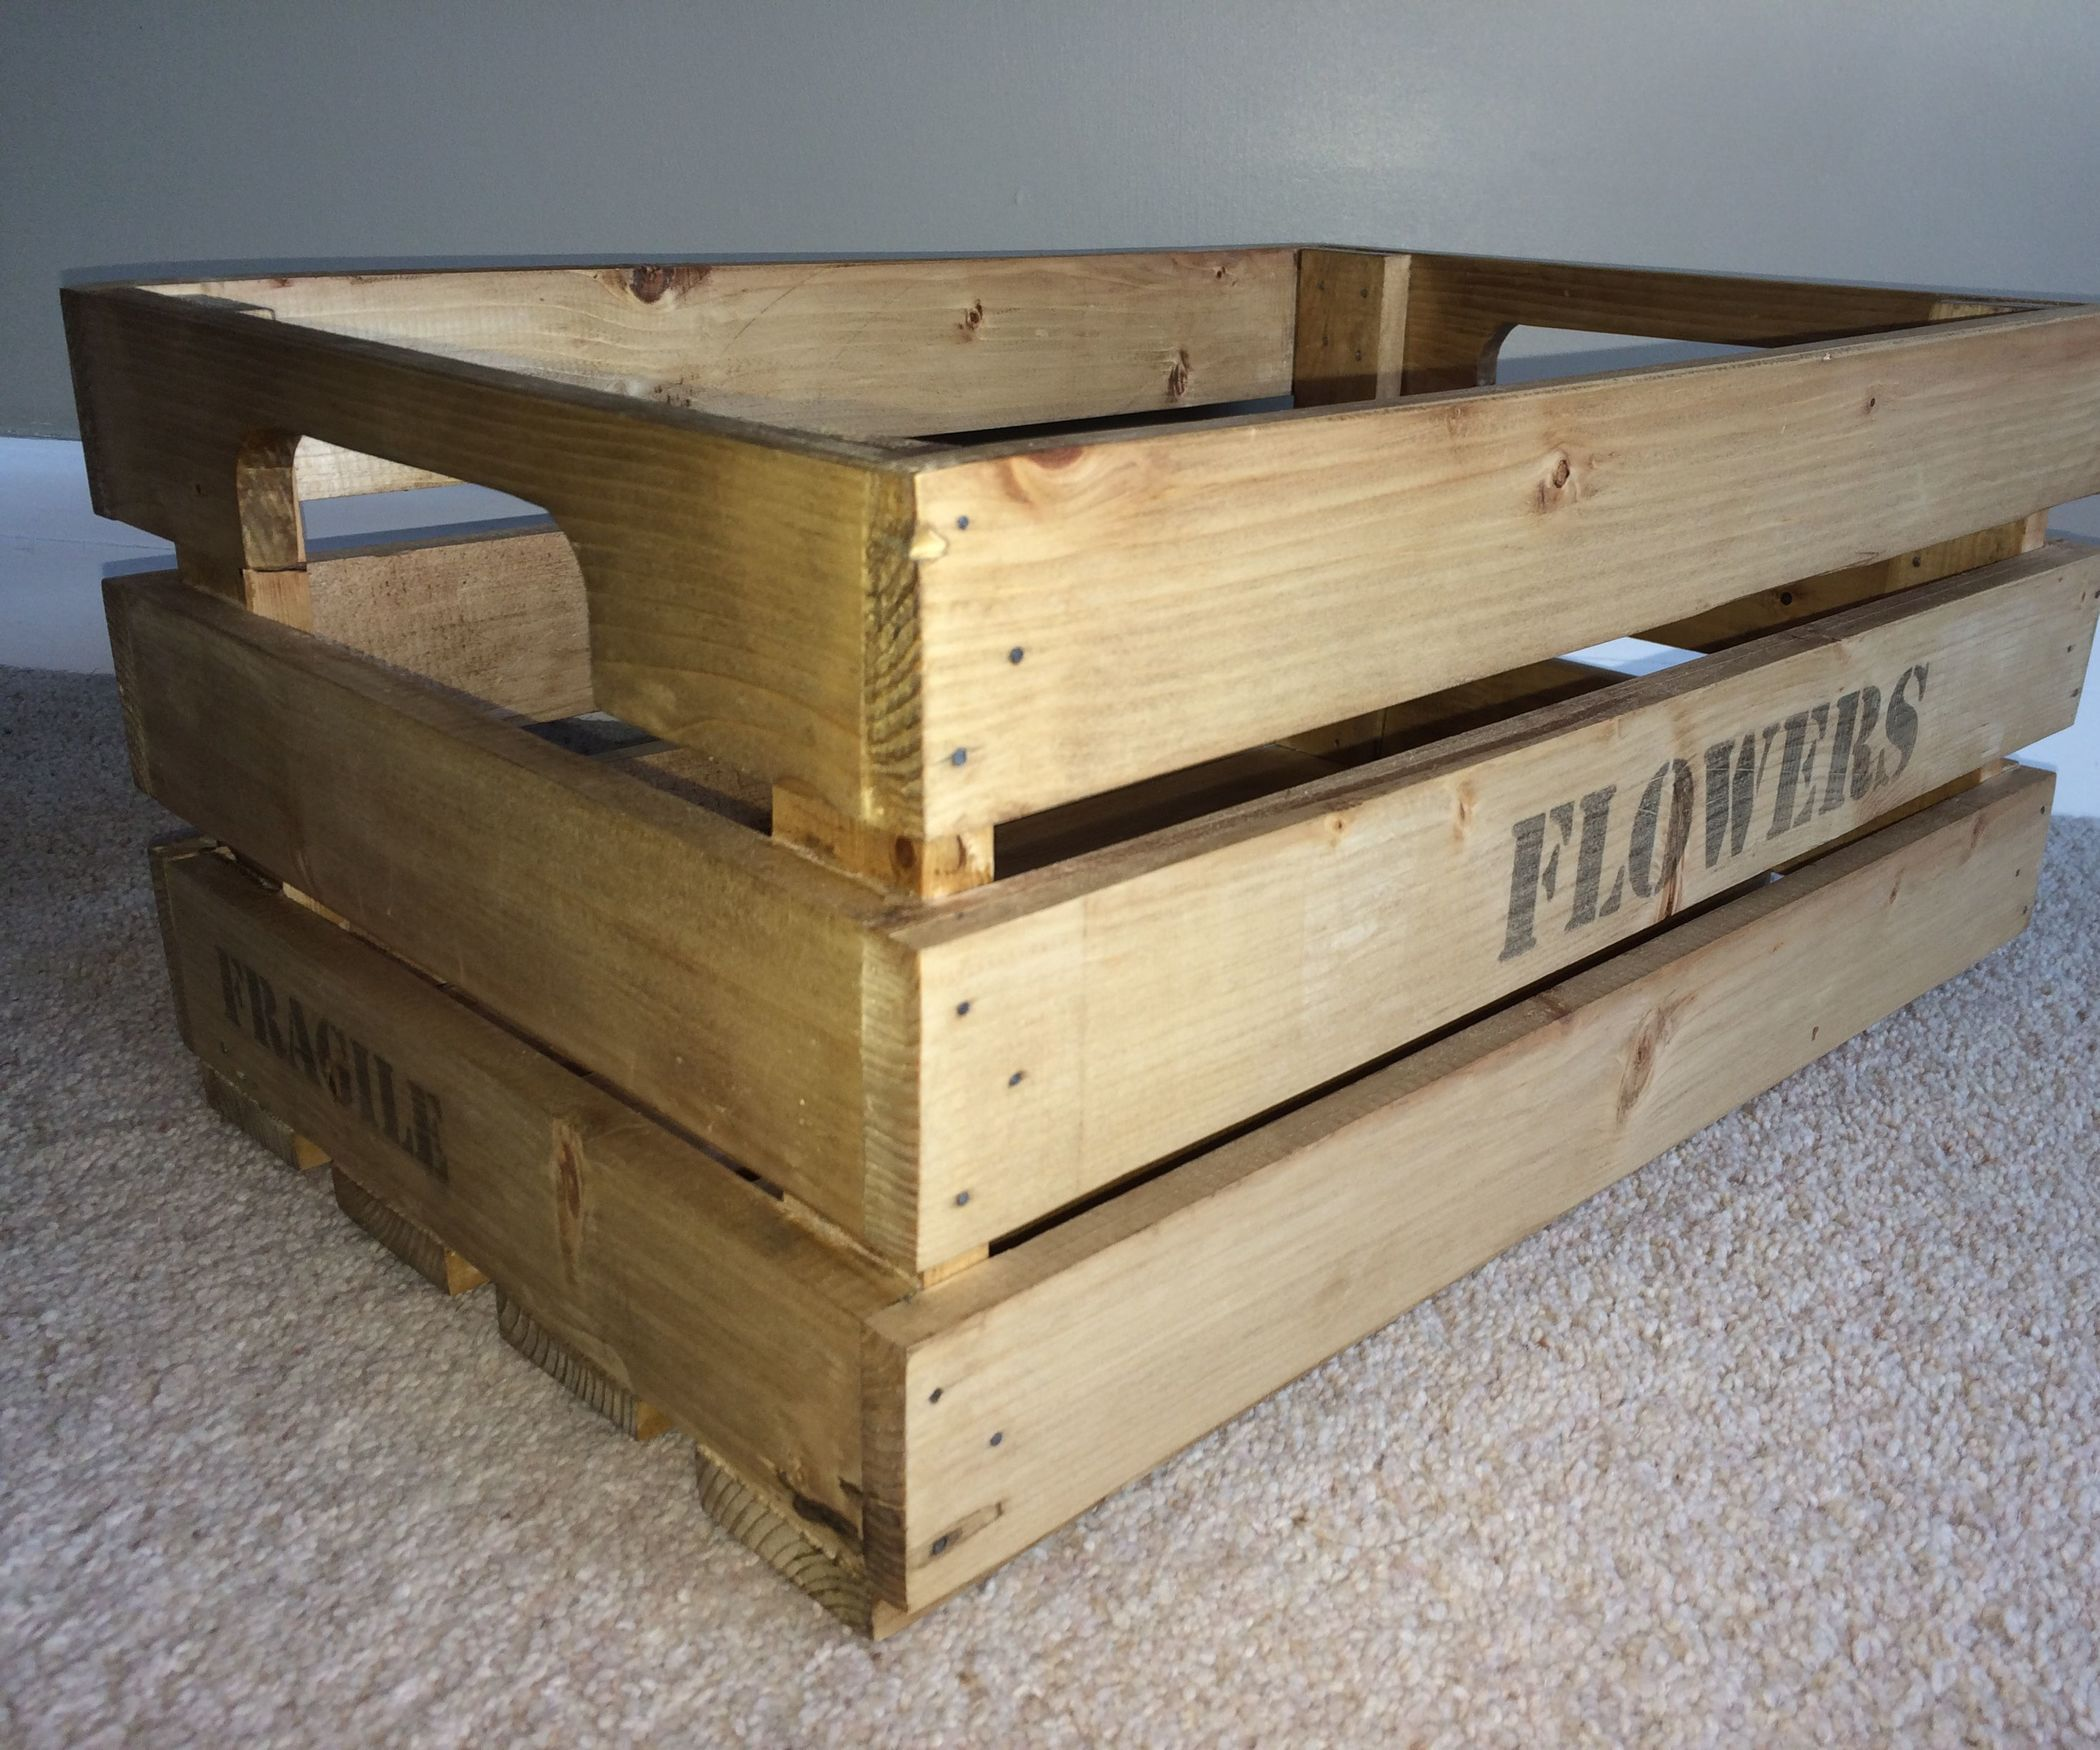 How To Make A Wooden Crate Wooden Crates Crates And